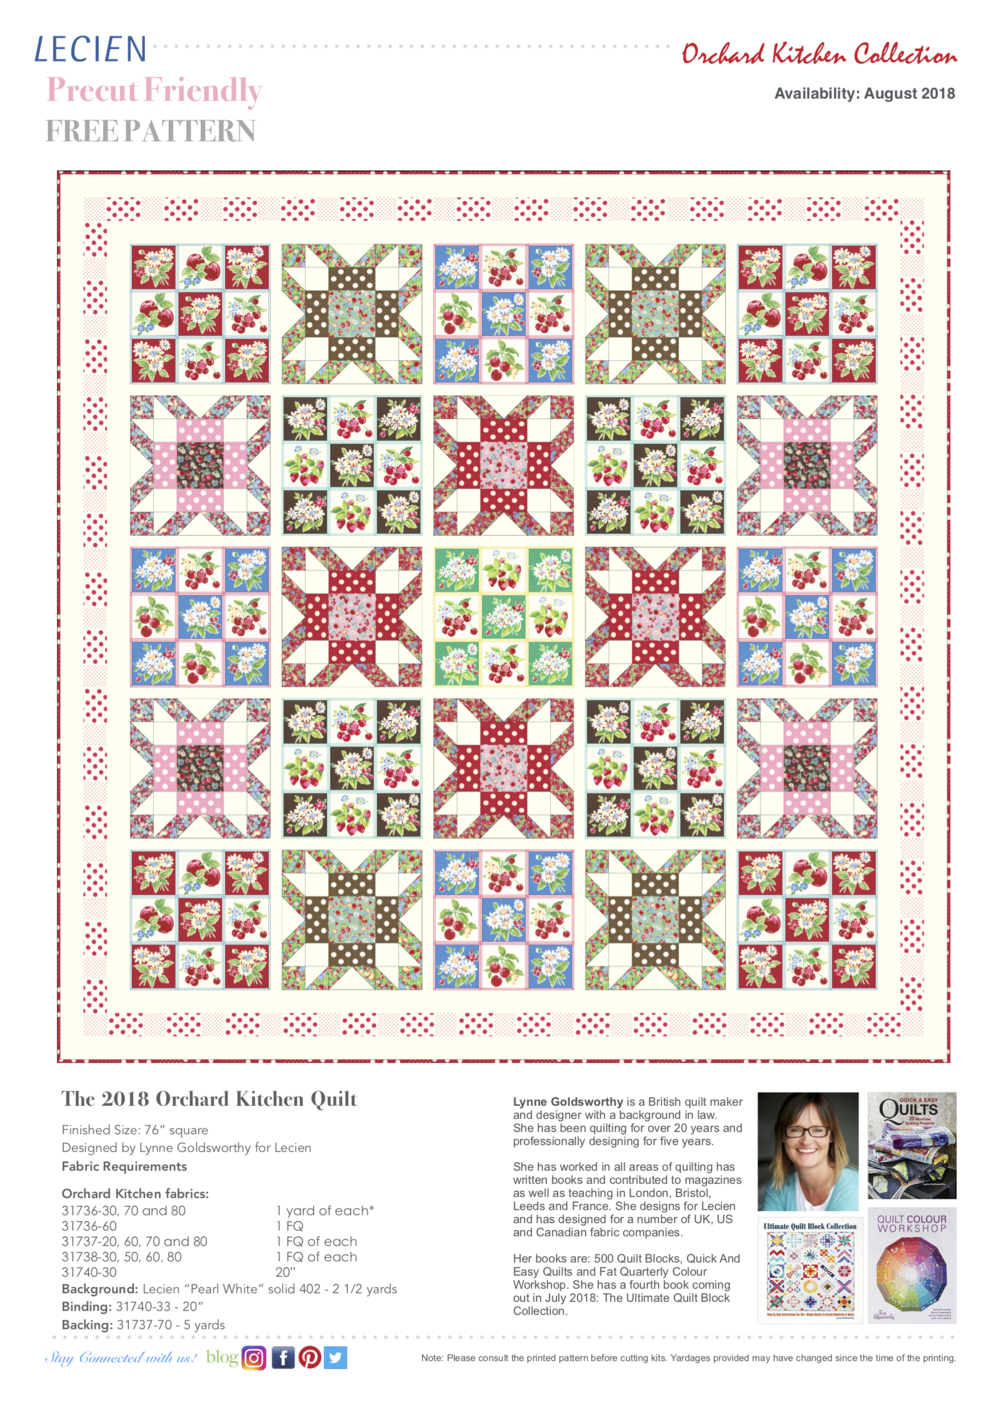 The 2018 Orchard Kitchen Quilt